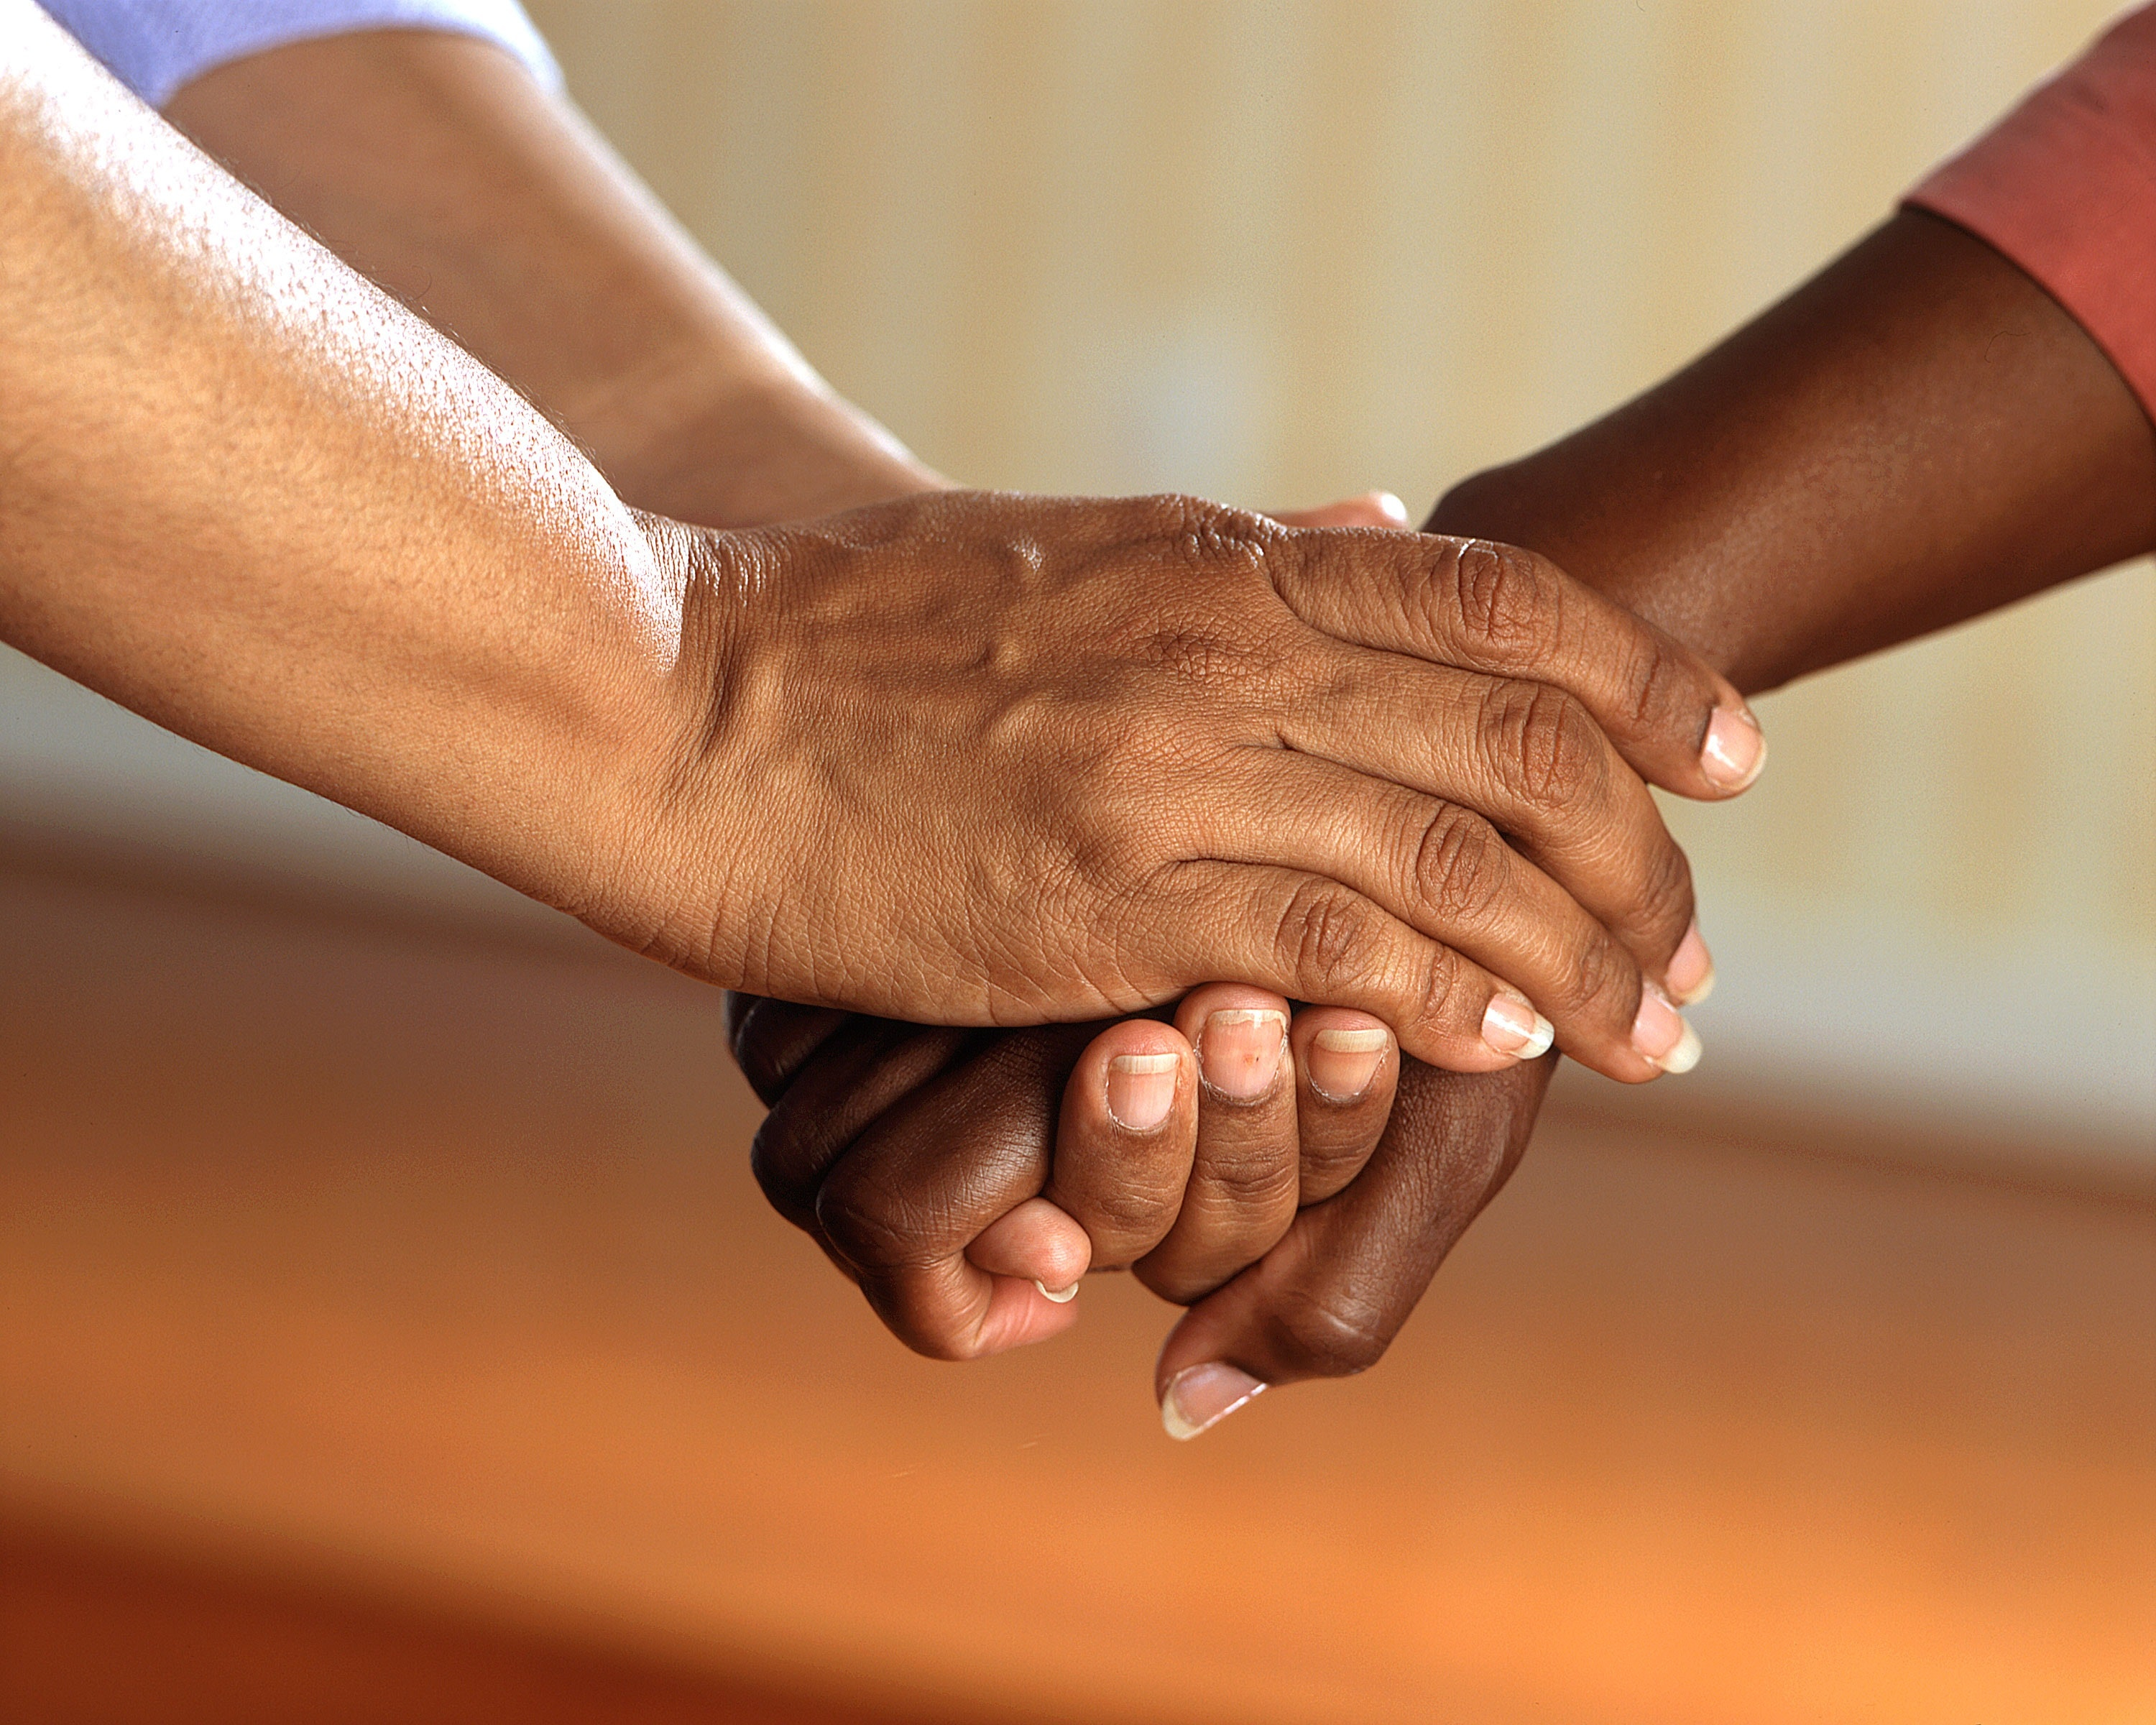 Ways to Celebrate Your Caregiver this Holiday Season